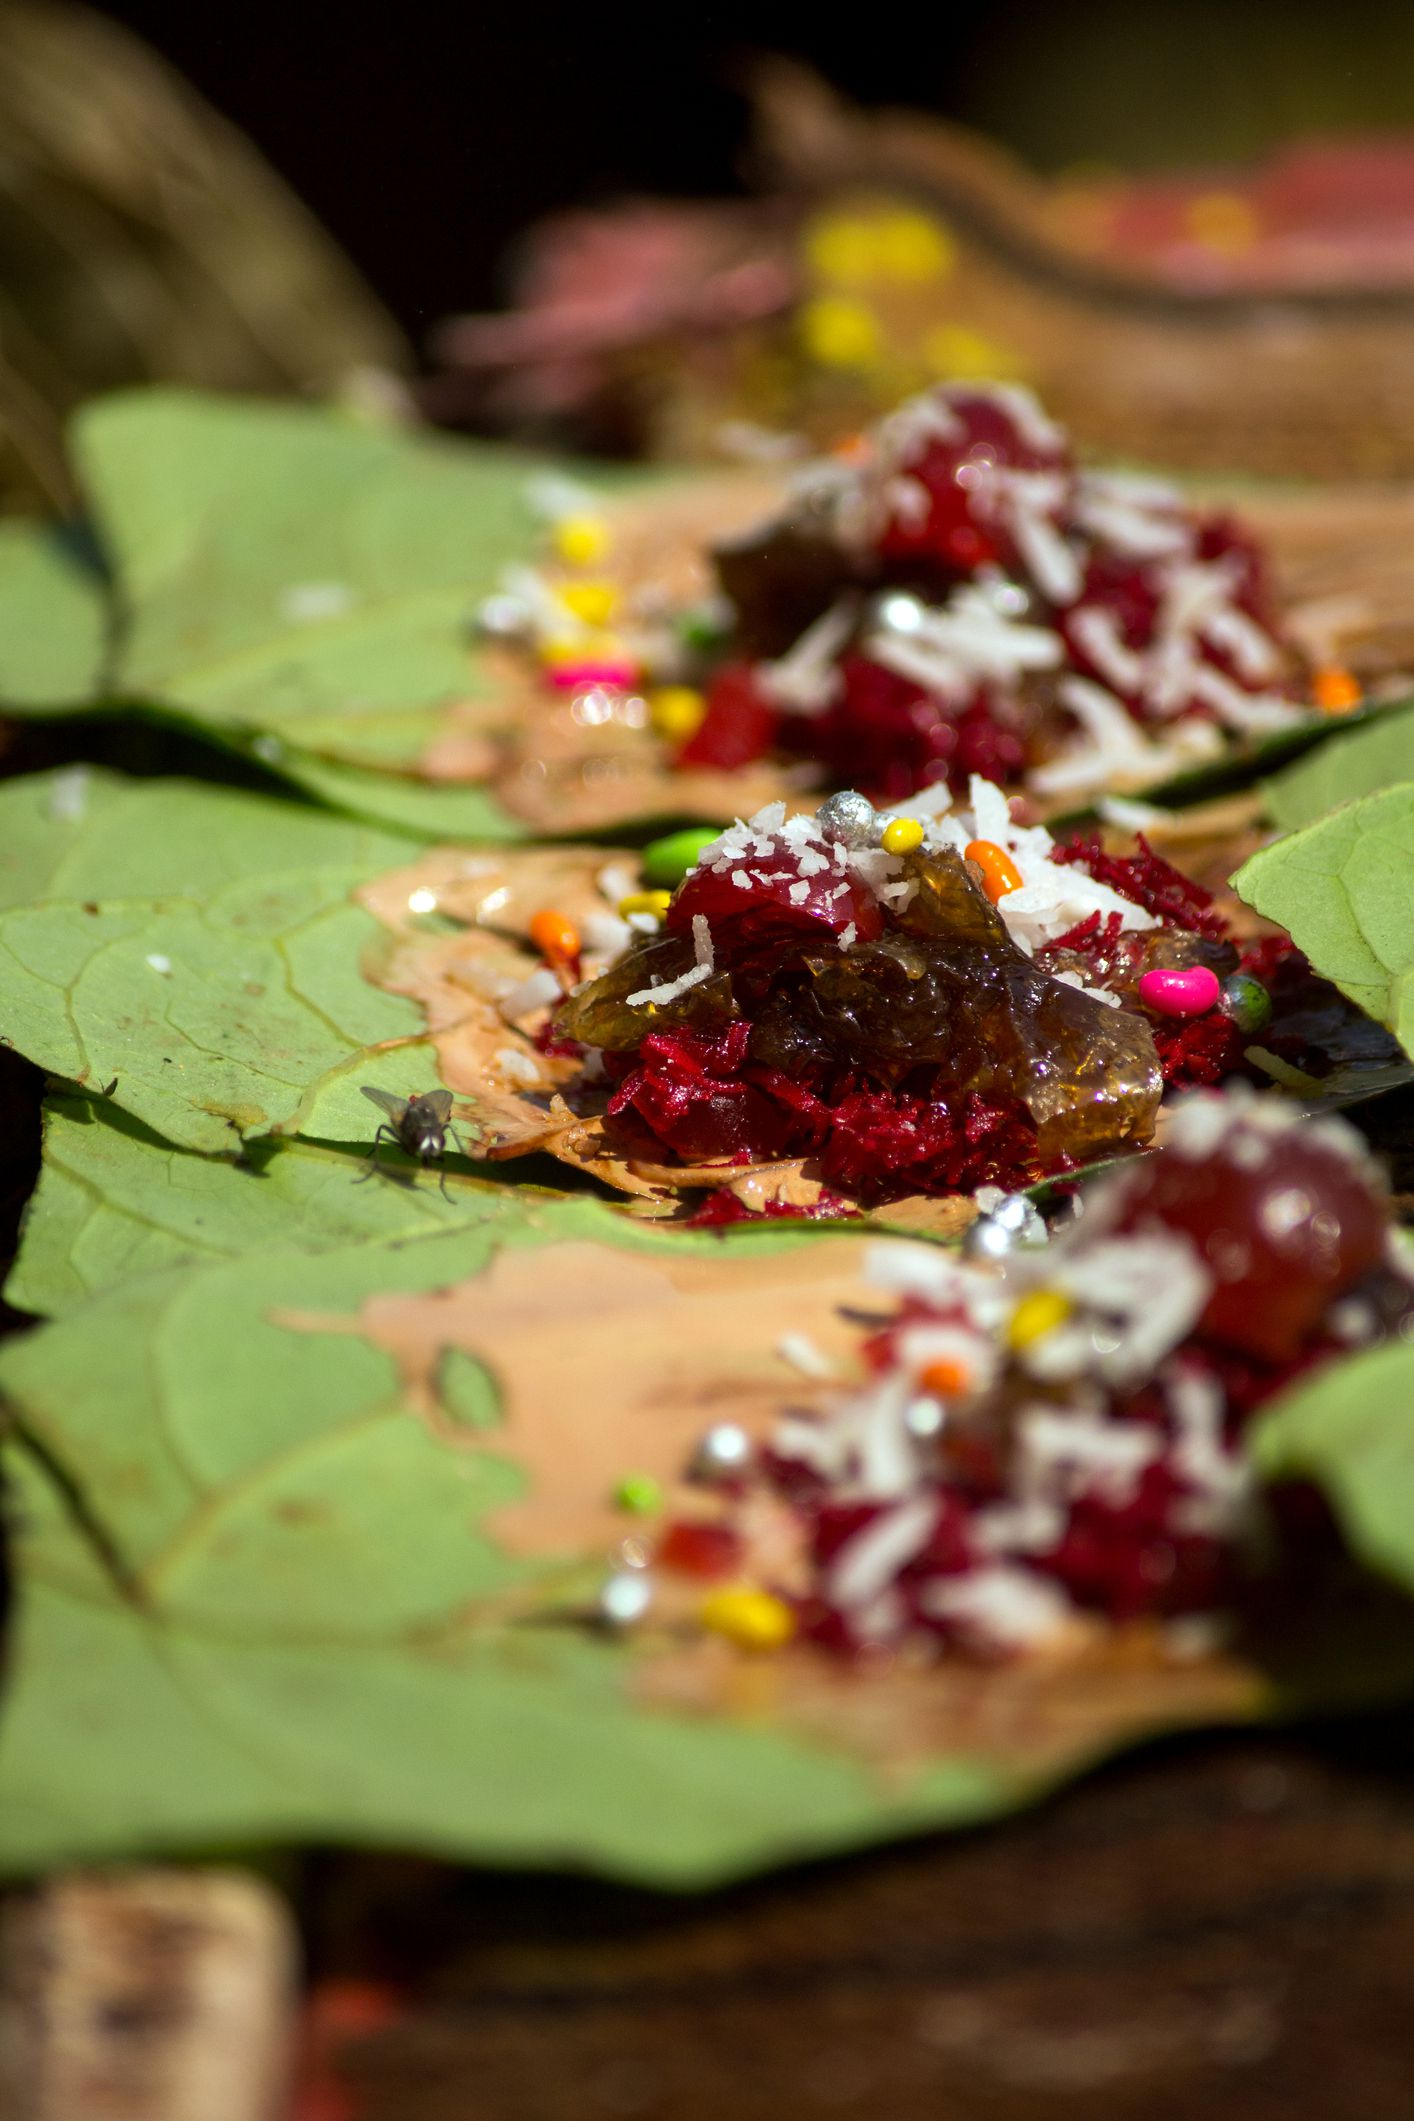 What is Paan Indian Food and Why Is It So Popular?